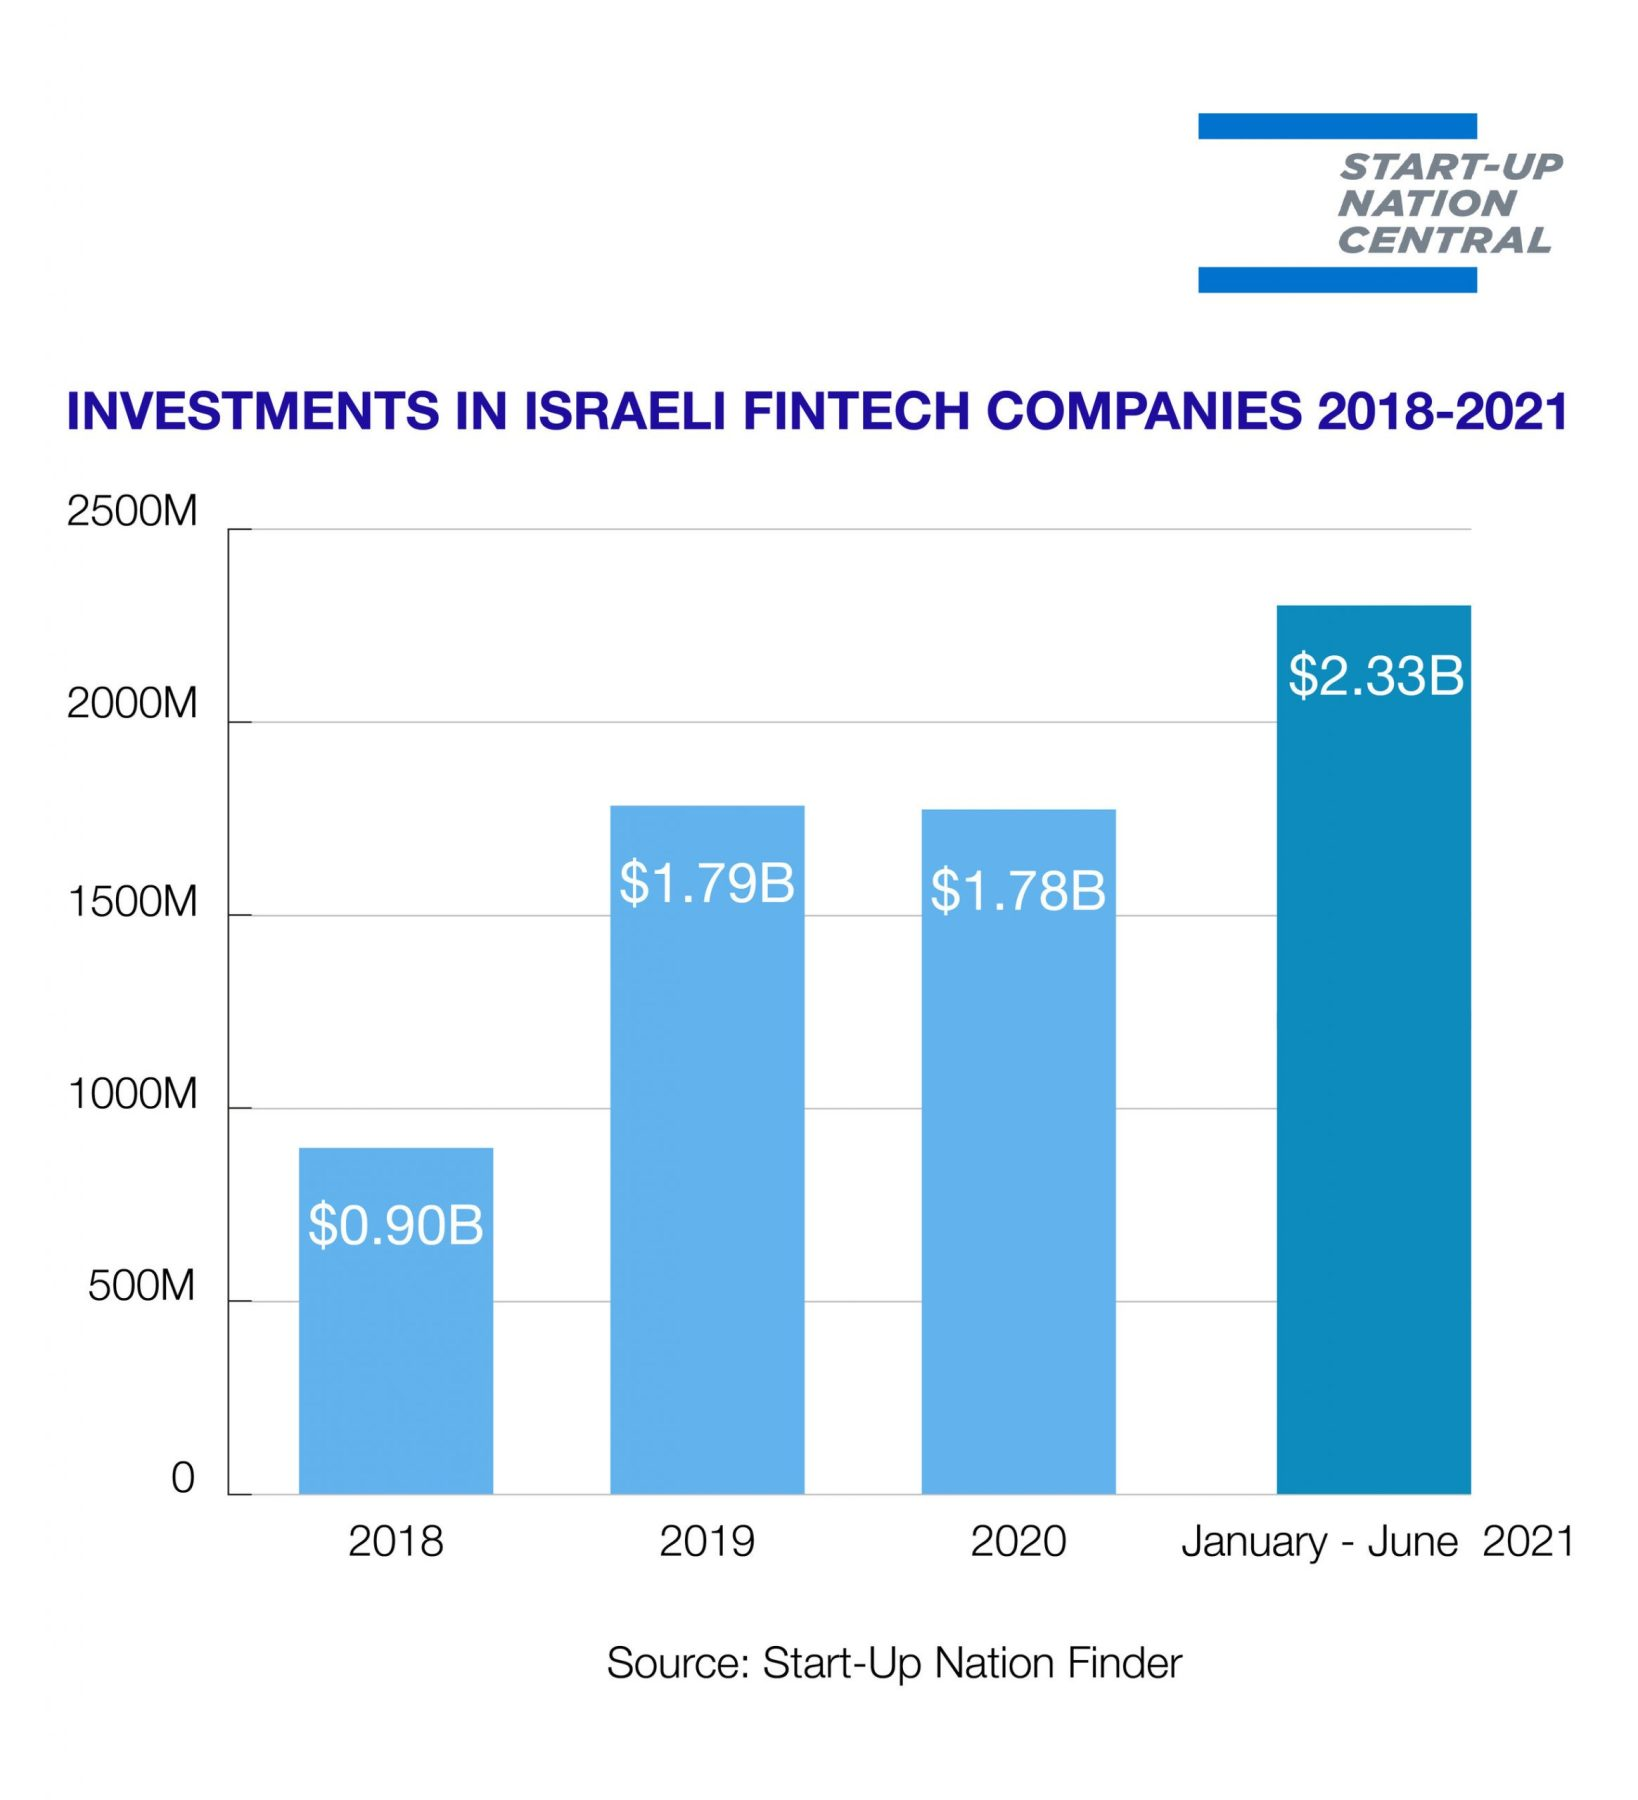 Investments in Israeli Fintech Companies 2018-2021, source: Start-Up Nation Central Finder